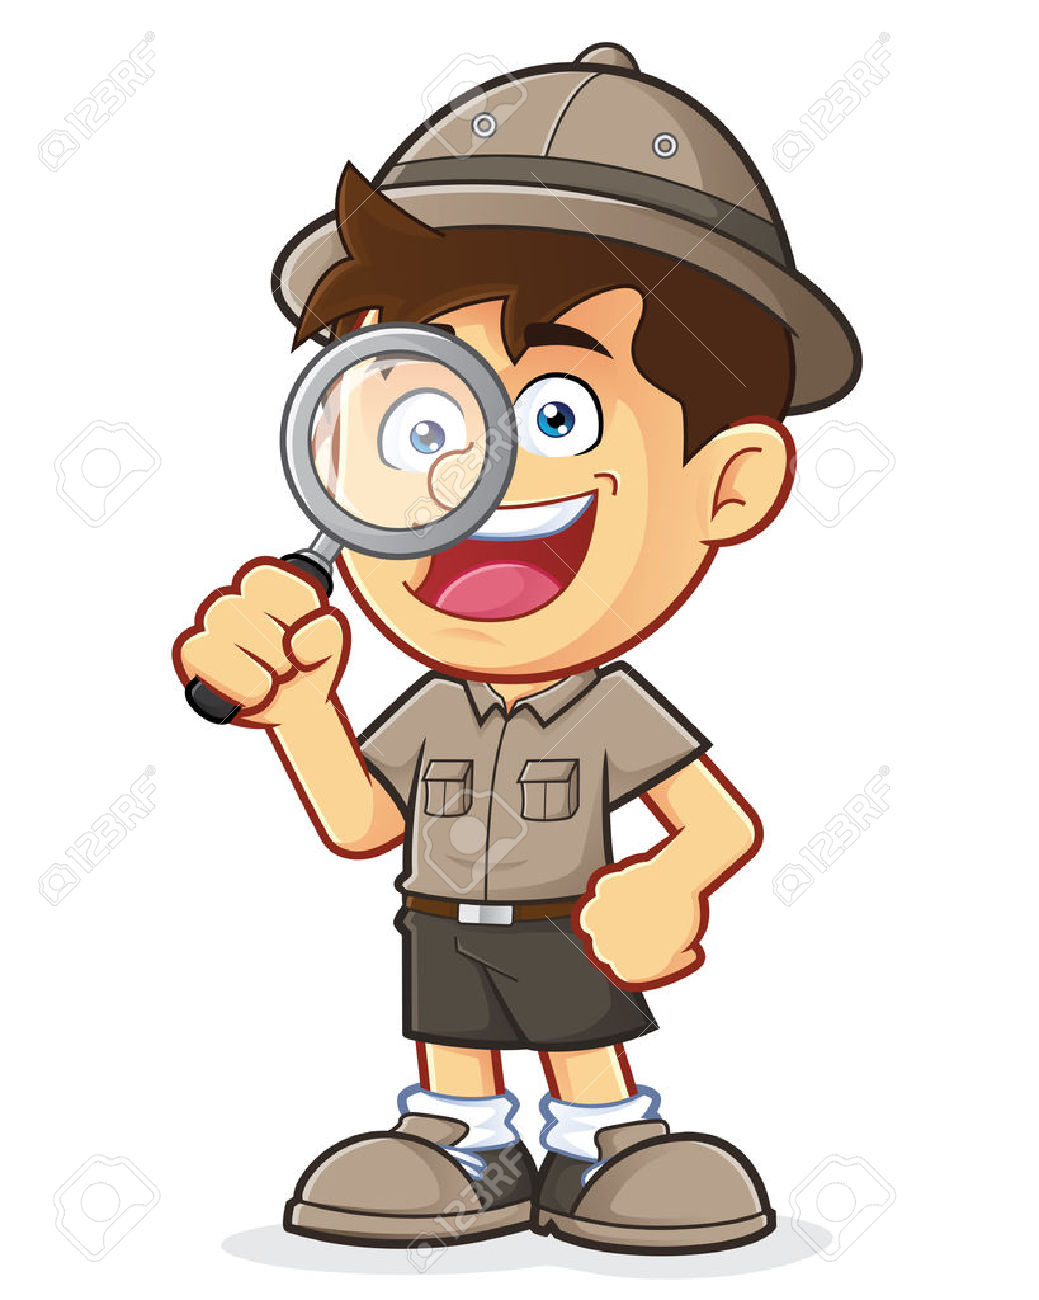 Boy Scout Or Explorer Boy With Magnifying Glass Royalty Free.